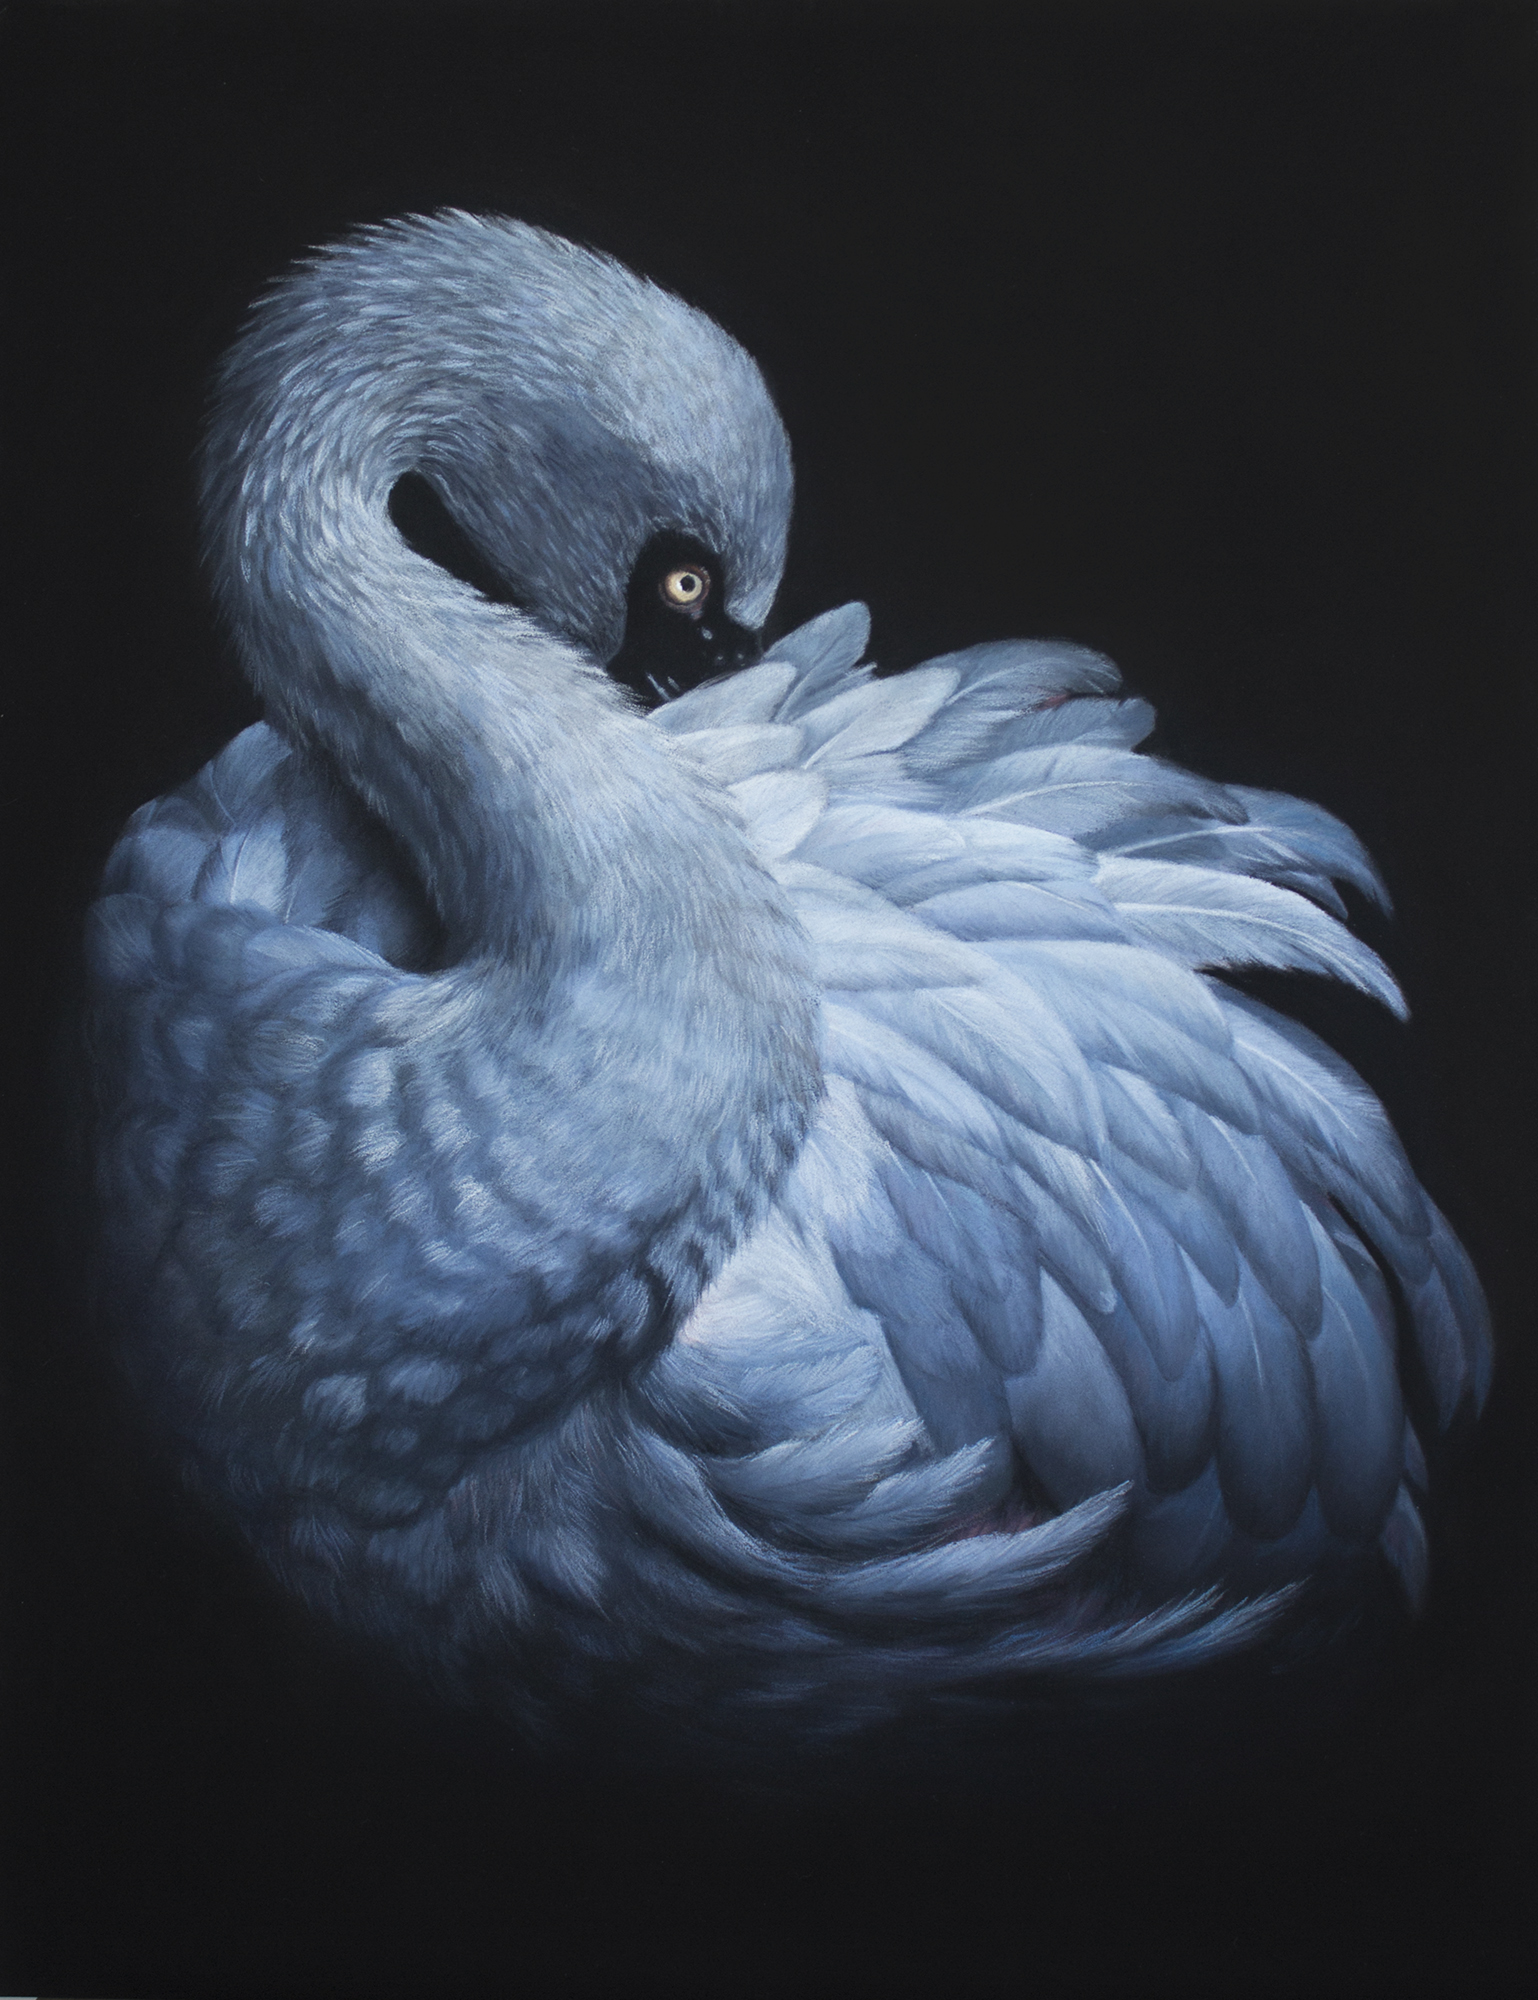 Vera Evseeva, In the dark, Pastel, pastel pencils on paper, 30 cm x 40 cm,  http://evseeva-art.ru/